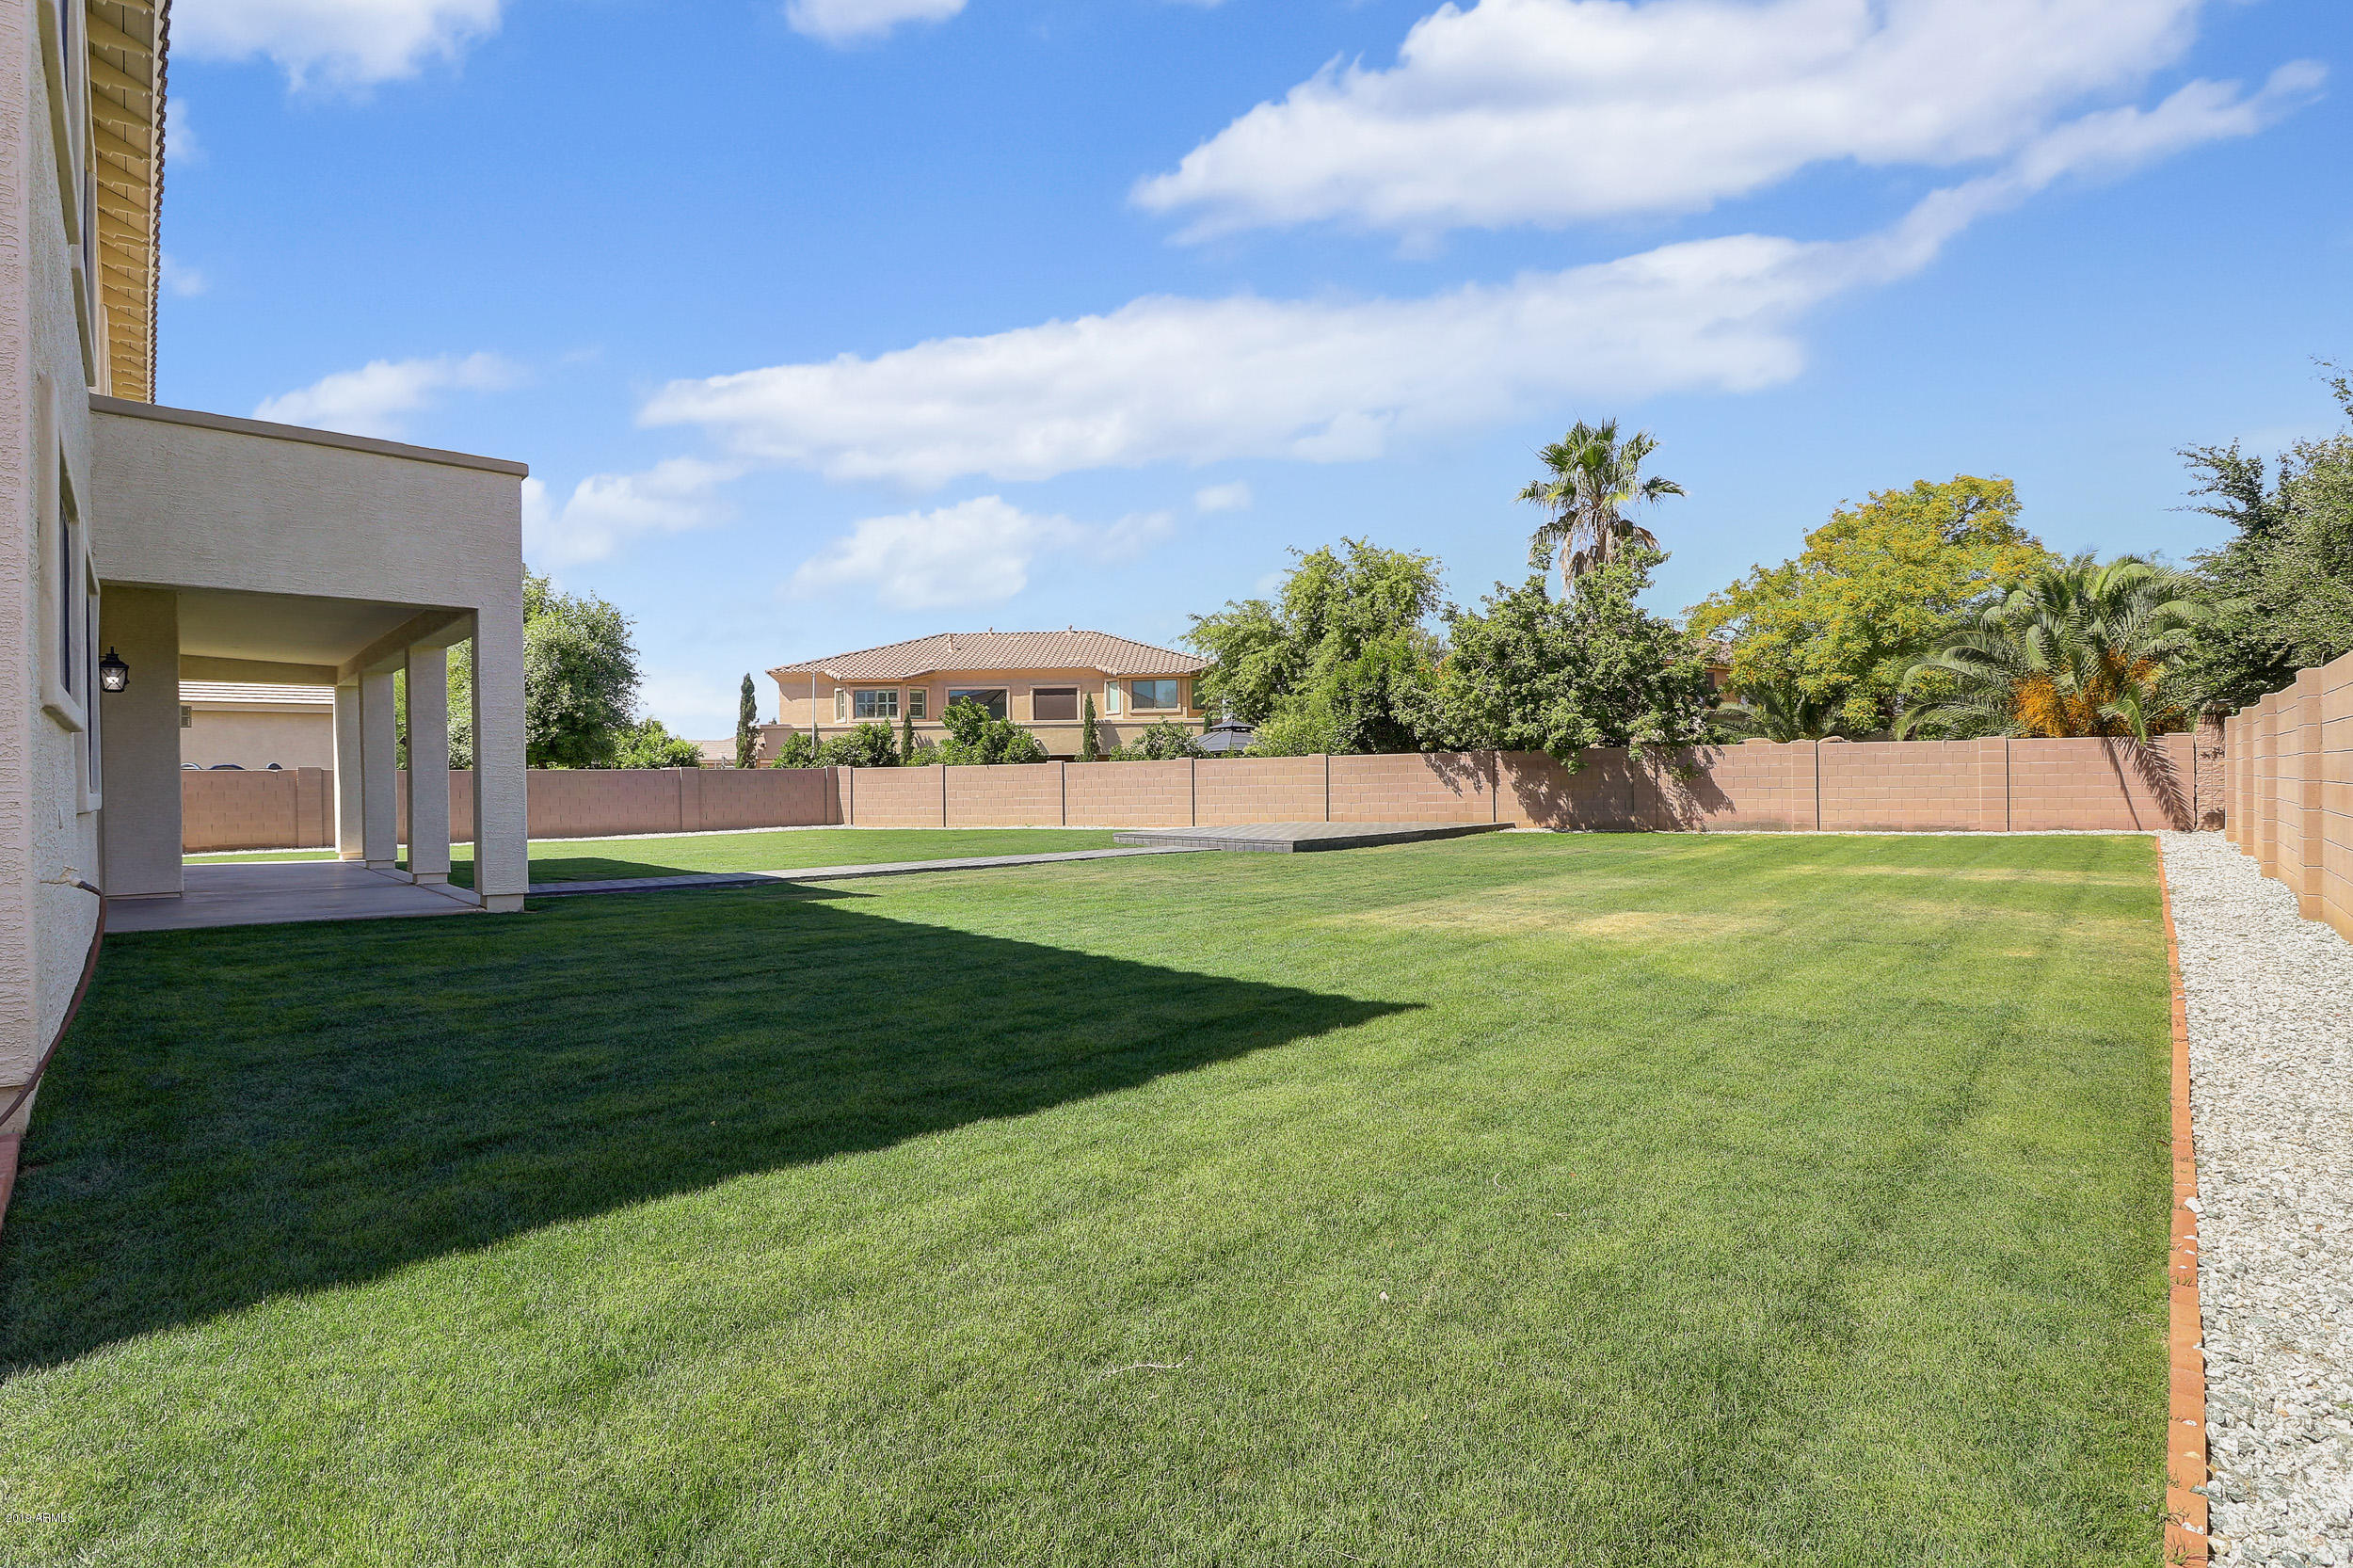 MLS 5928877 4586 N 153RD Avenue, Goodyear, AZ 85395 Goodyear AZ Palm Valley